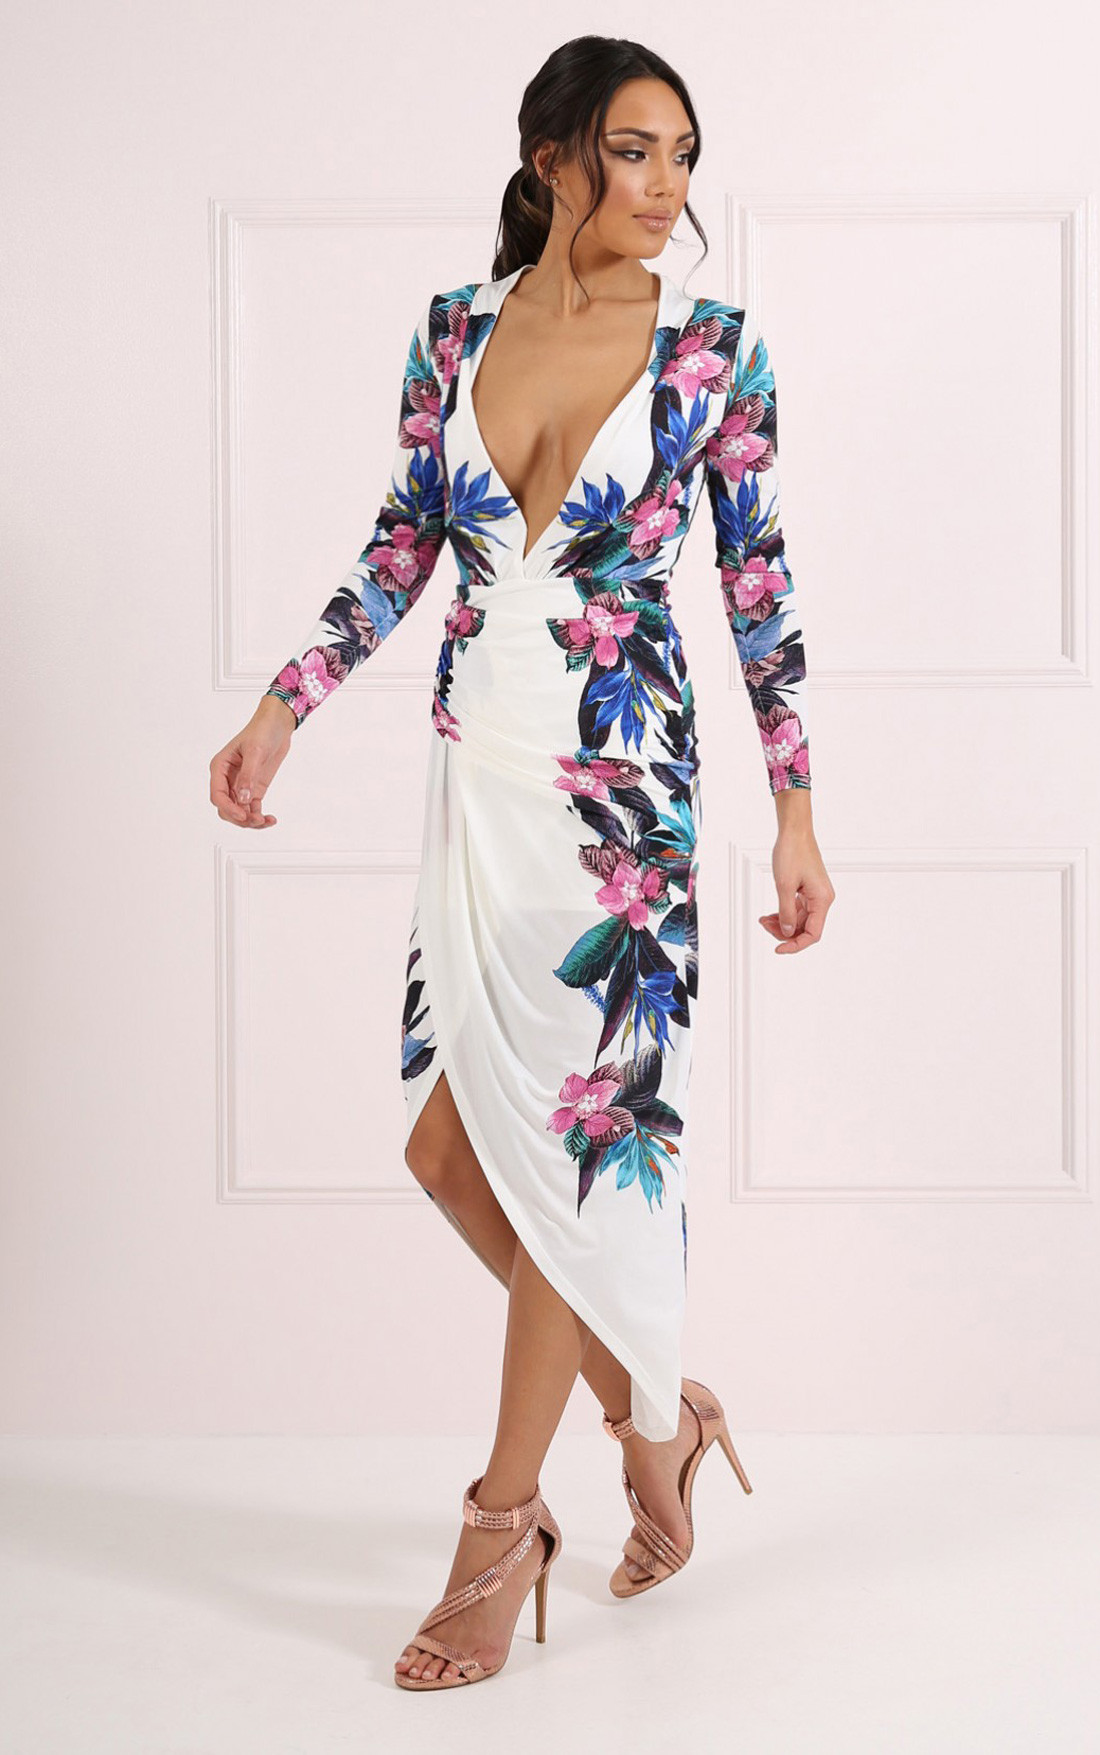 Plunge Dresses  Long Sleeve Deep Plunge Dress  In The Style